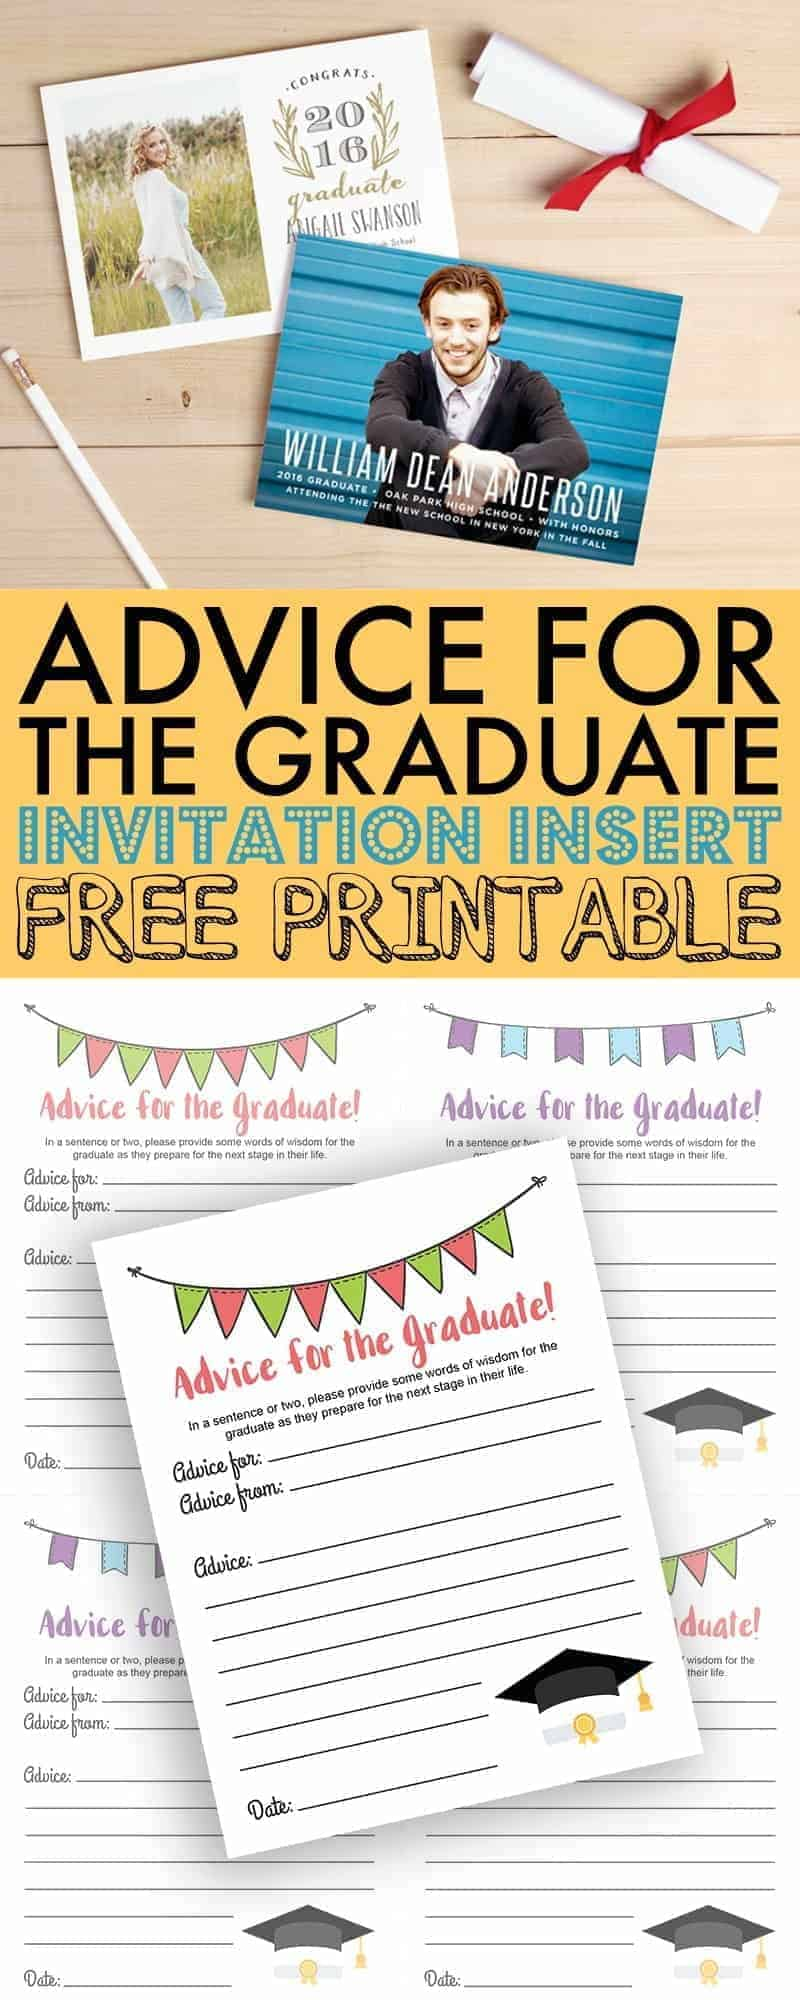 Include these free Advice for the Graduate printables with custom invitations and announcements from Basic Invite to create lasting memories and advice for 8th grade graduates.